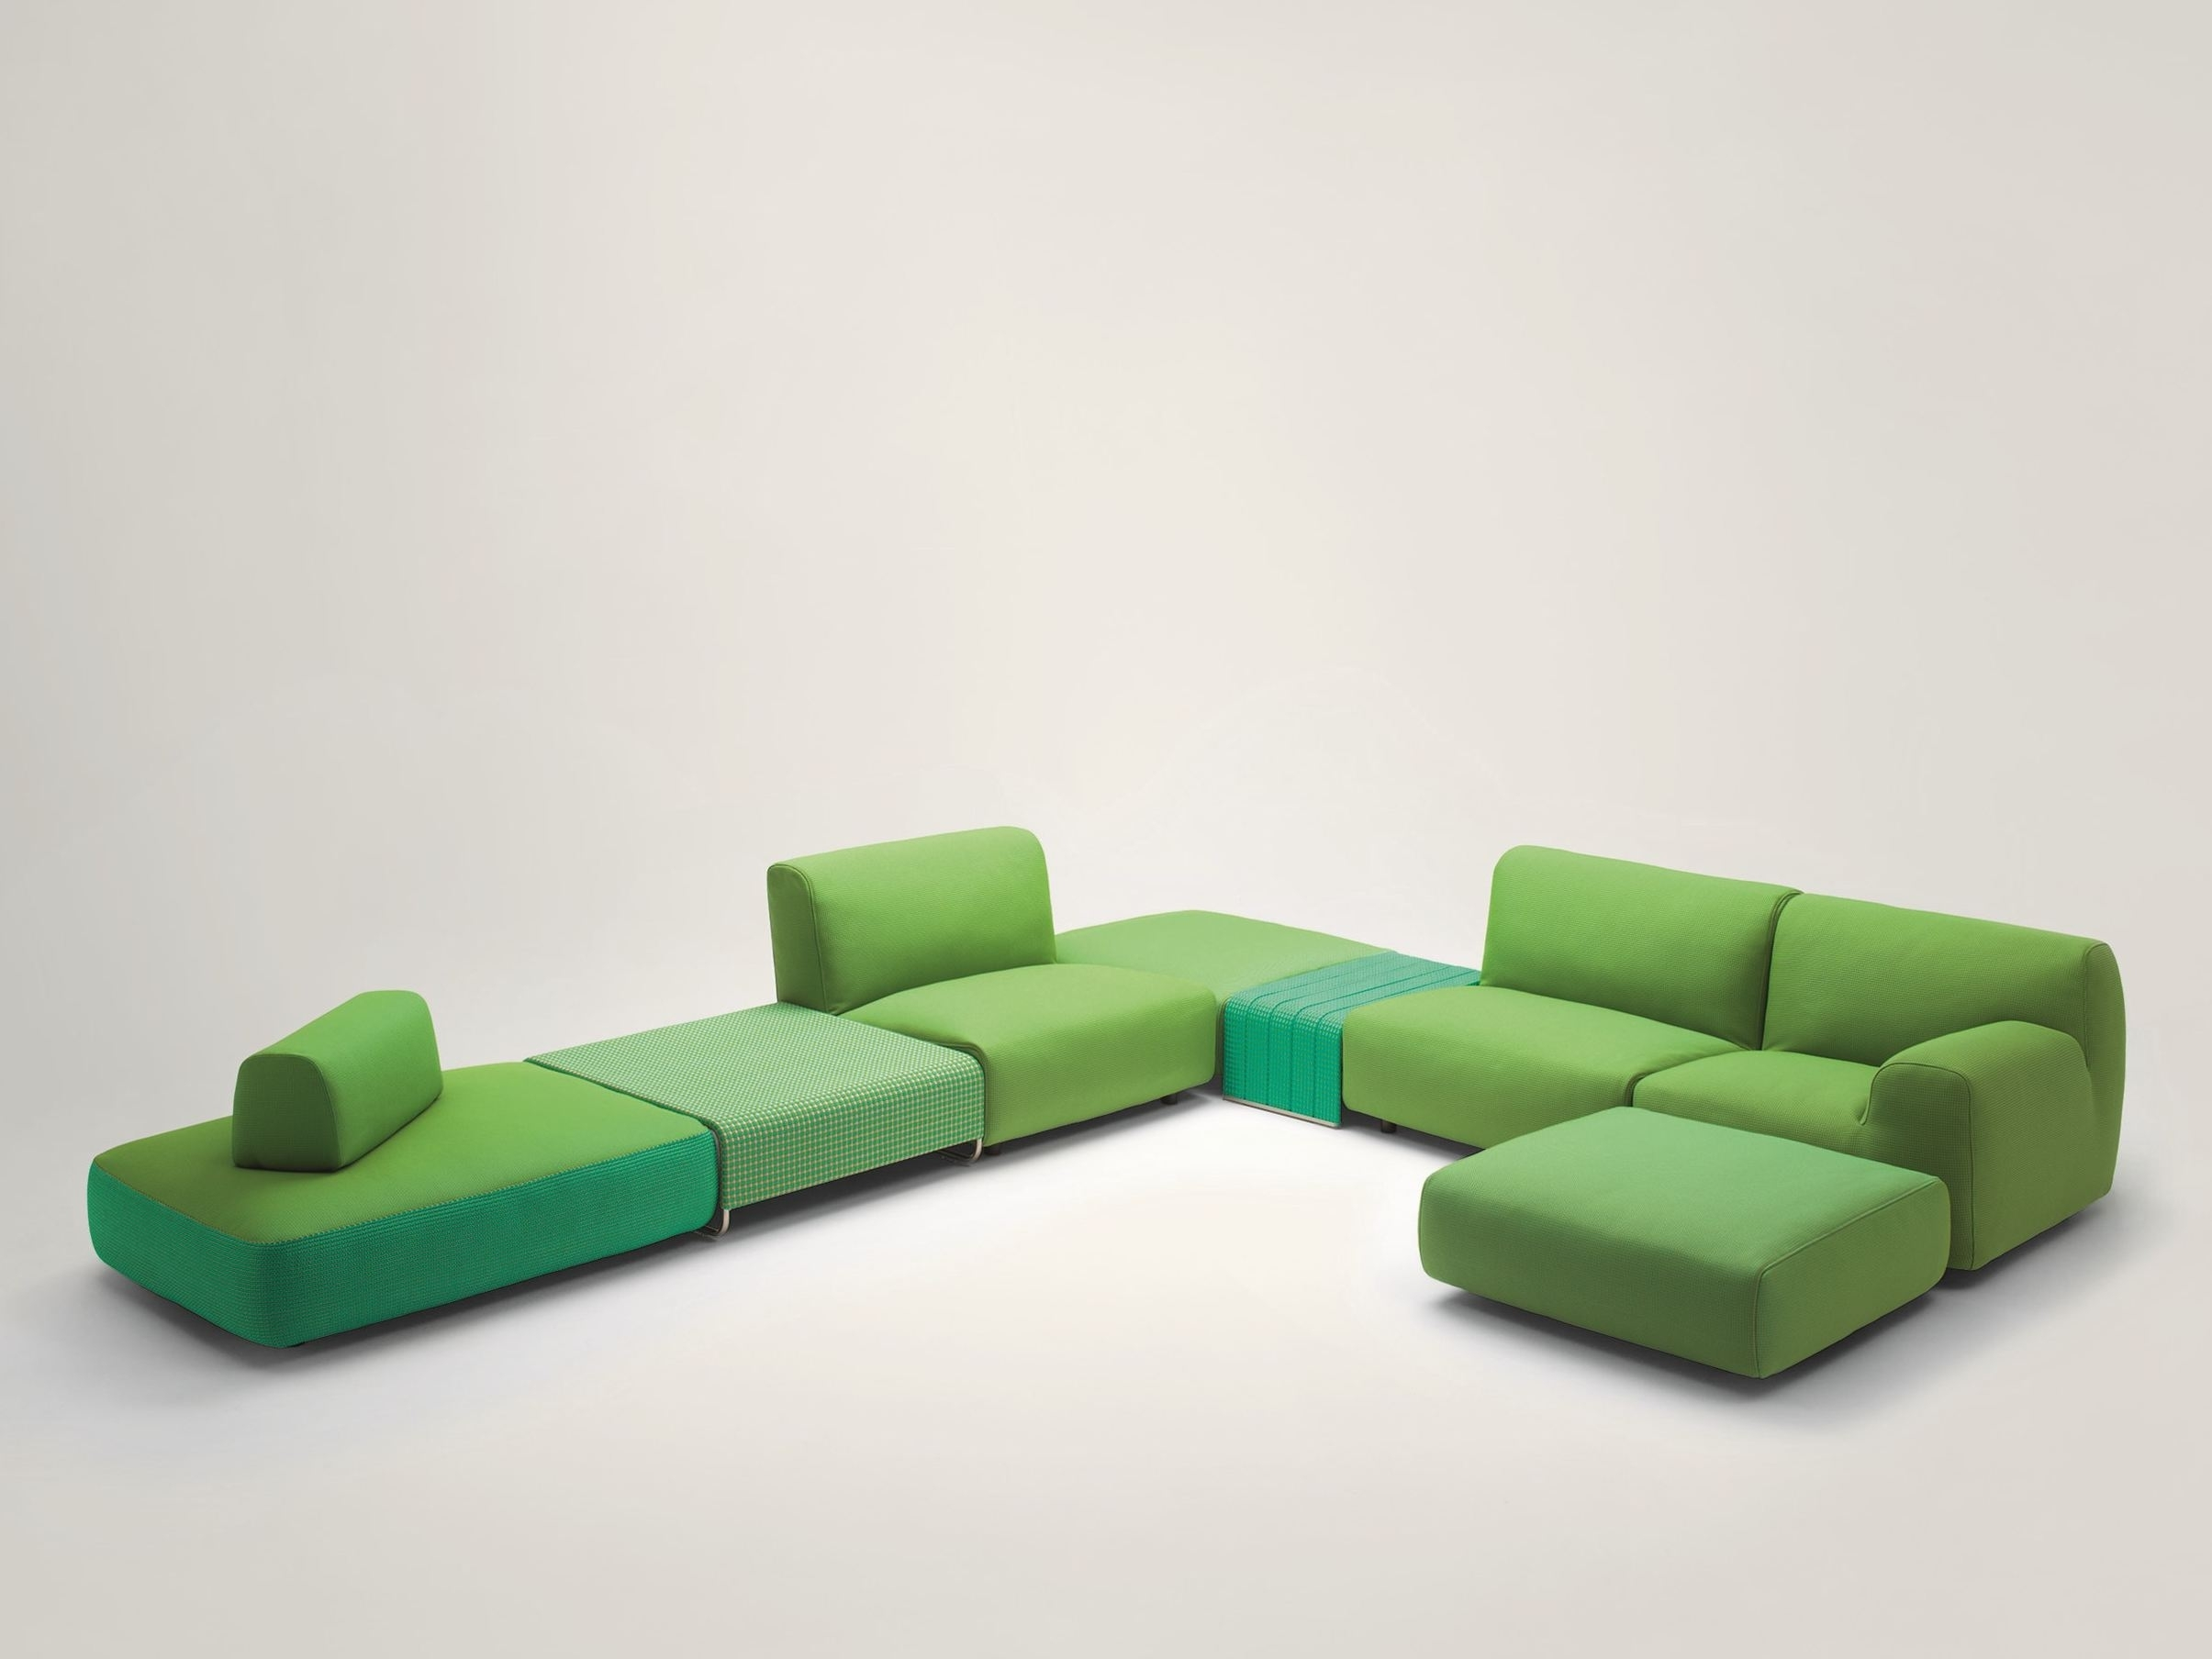 Sectional Sofa With Removable Cover Welcome Aqua Collectionpaola For Removable Covers Sectional Sofas (View 6 of 10)